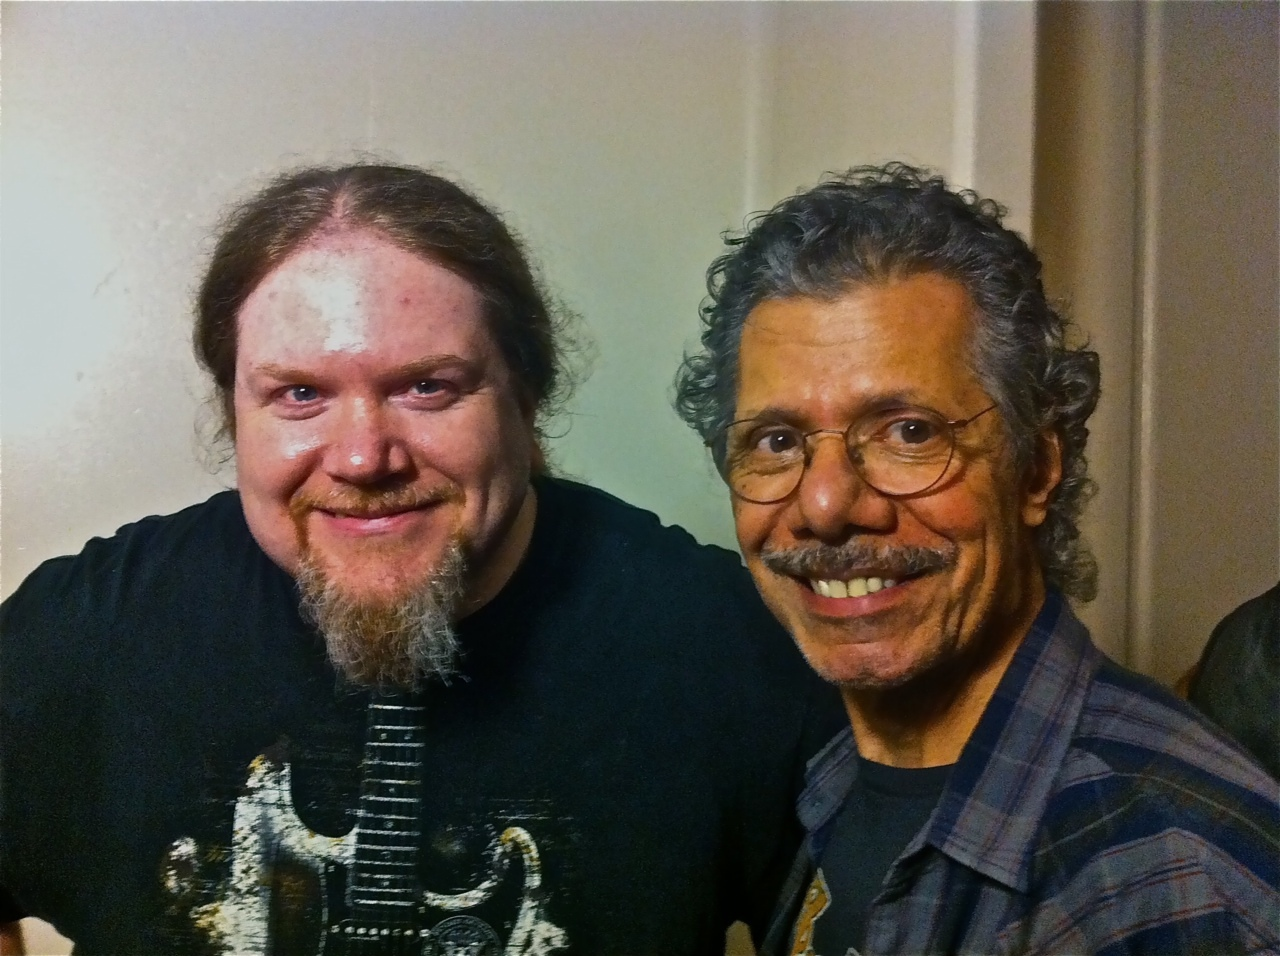 Ben with Chick Corea